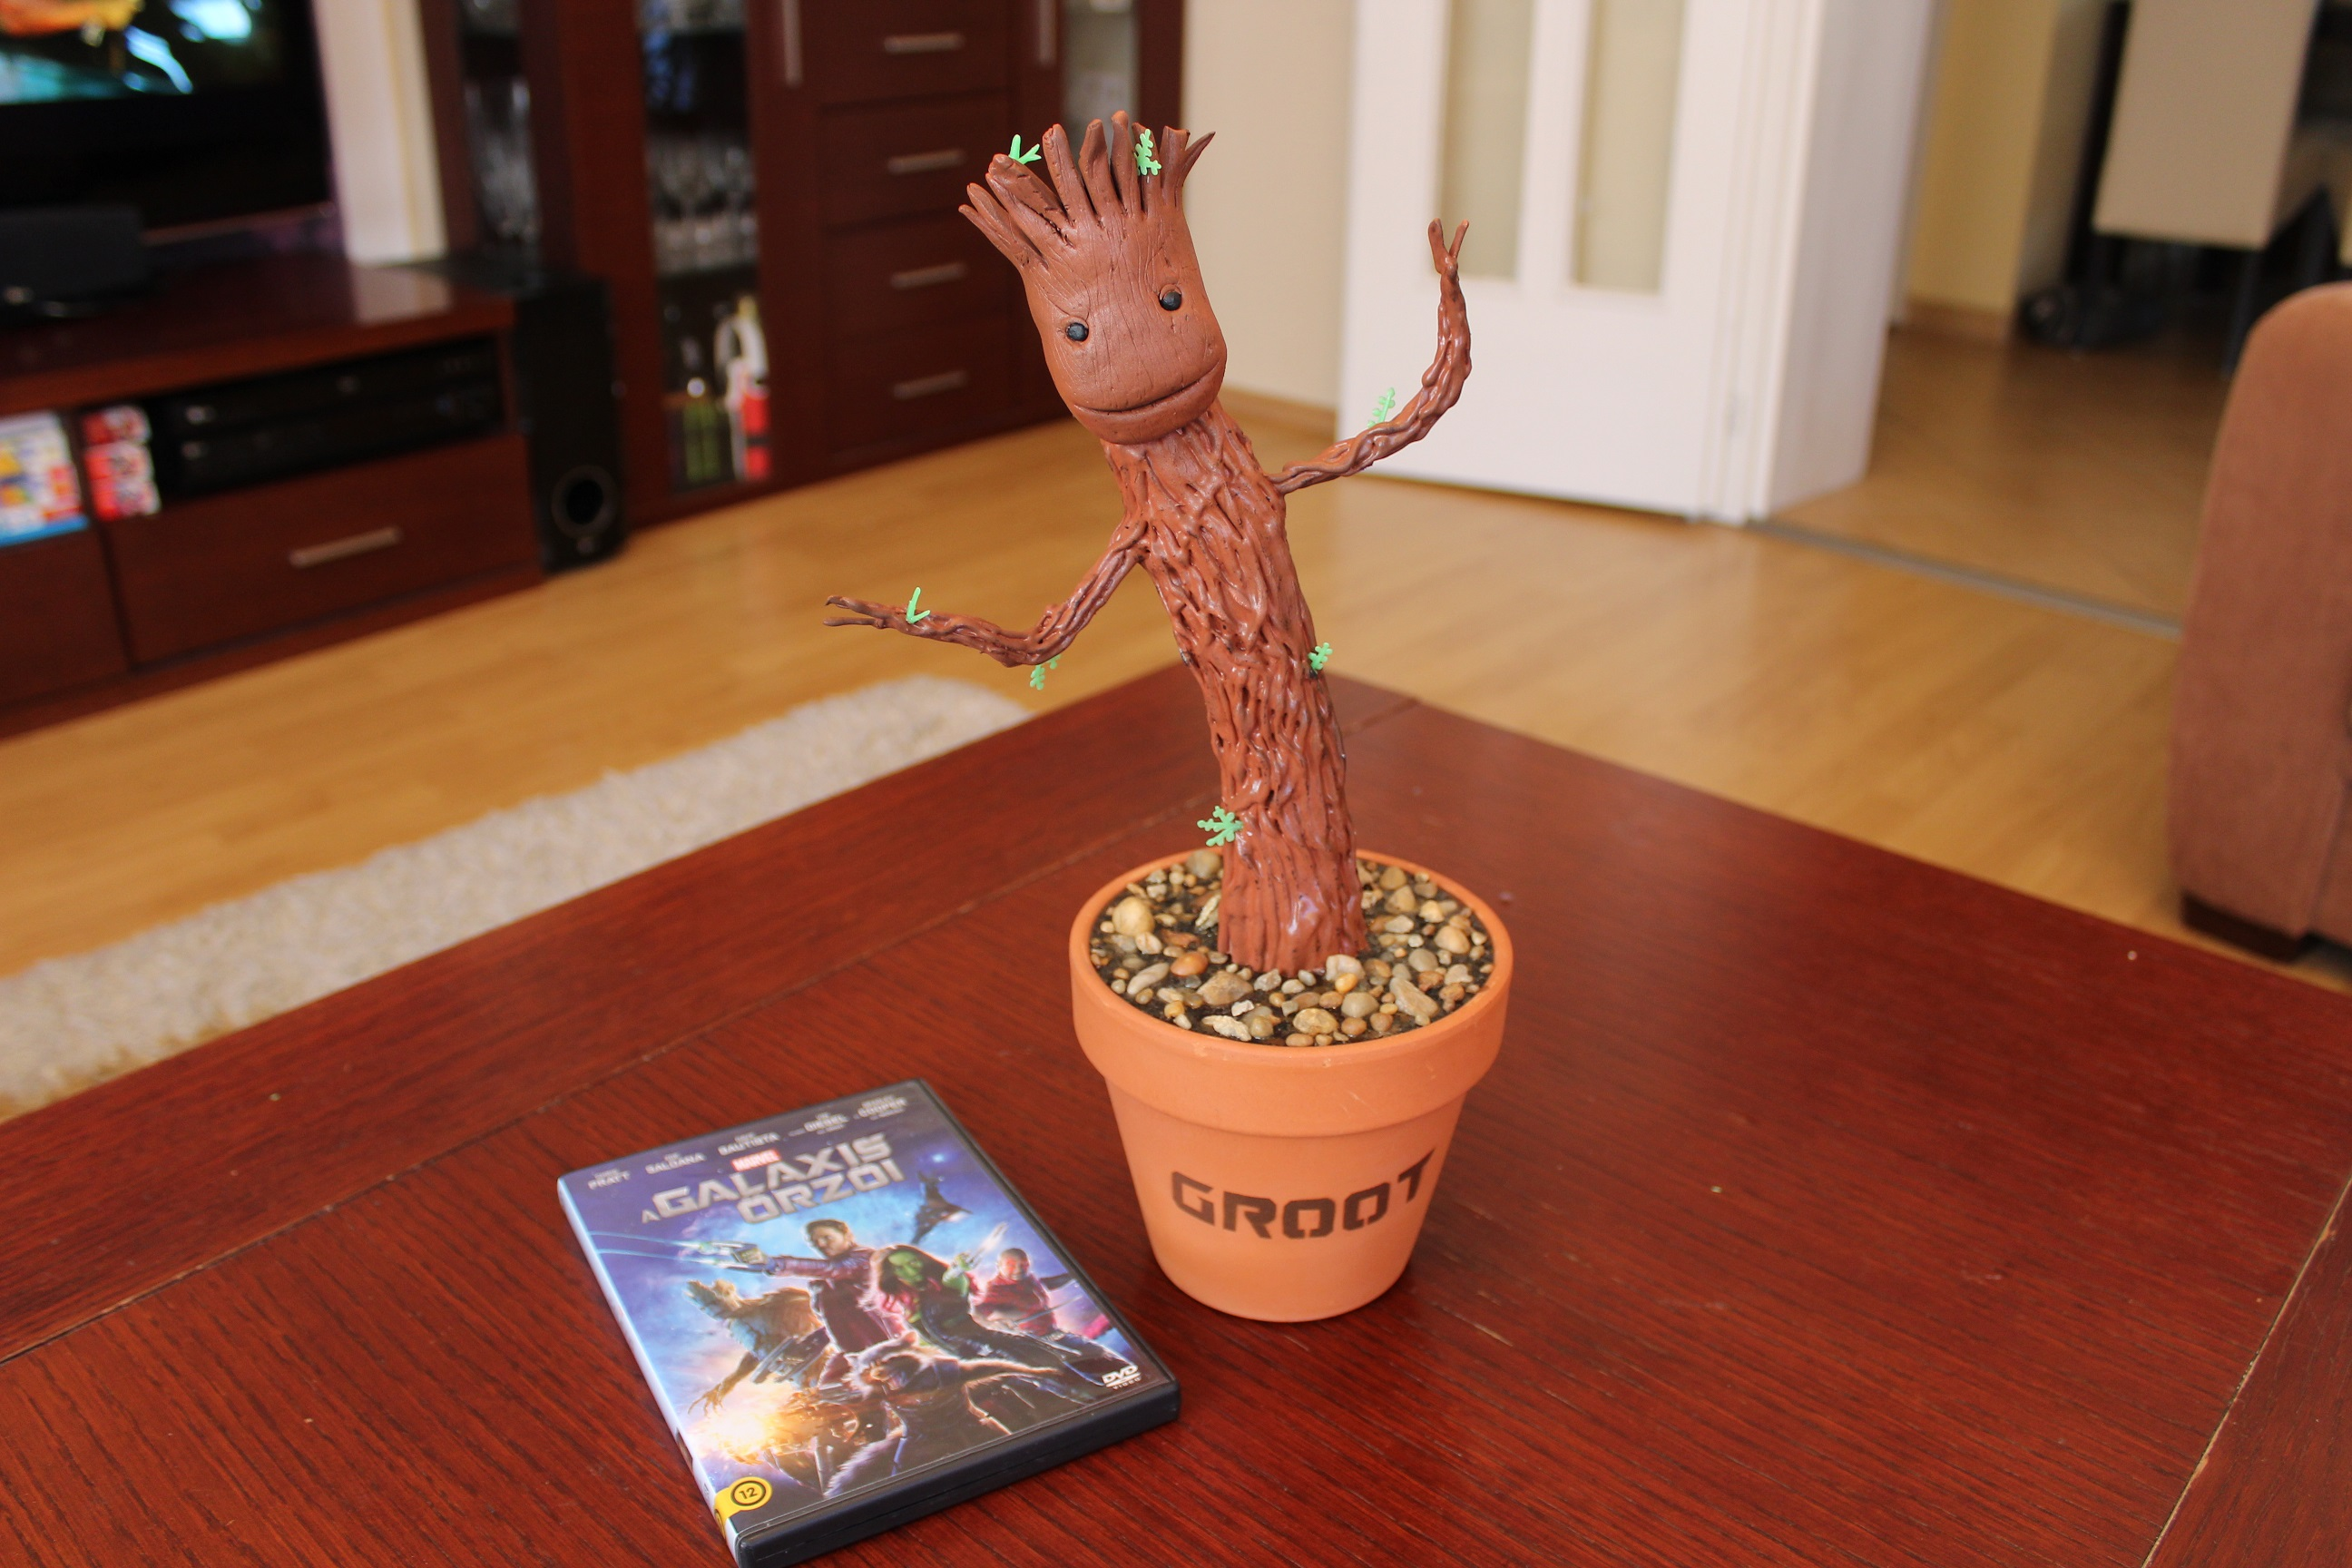 szmk_diy_csinald_magad_groot_guardians_galaxy_galaxis_orzoi_marvel_27.JPG